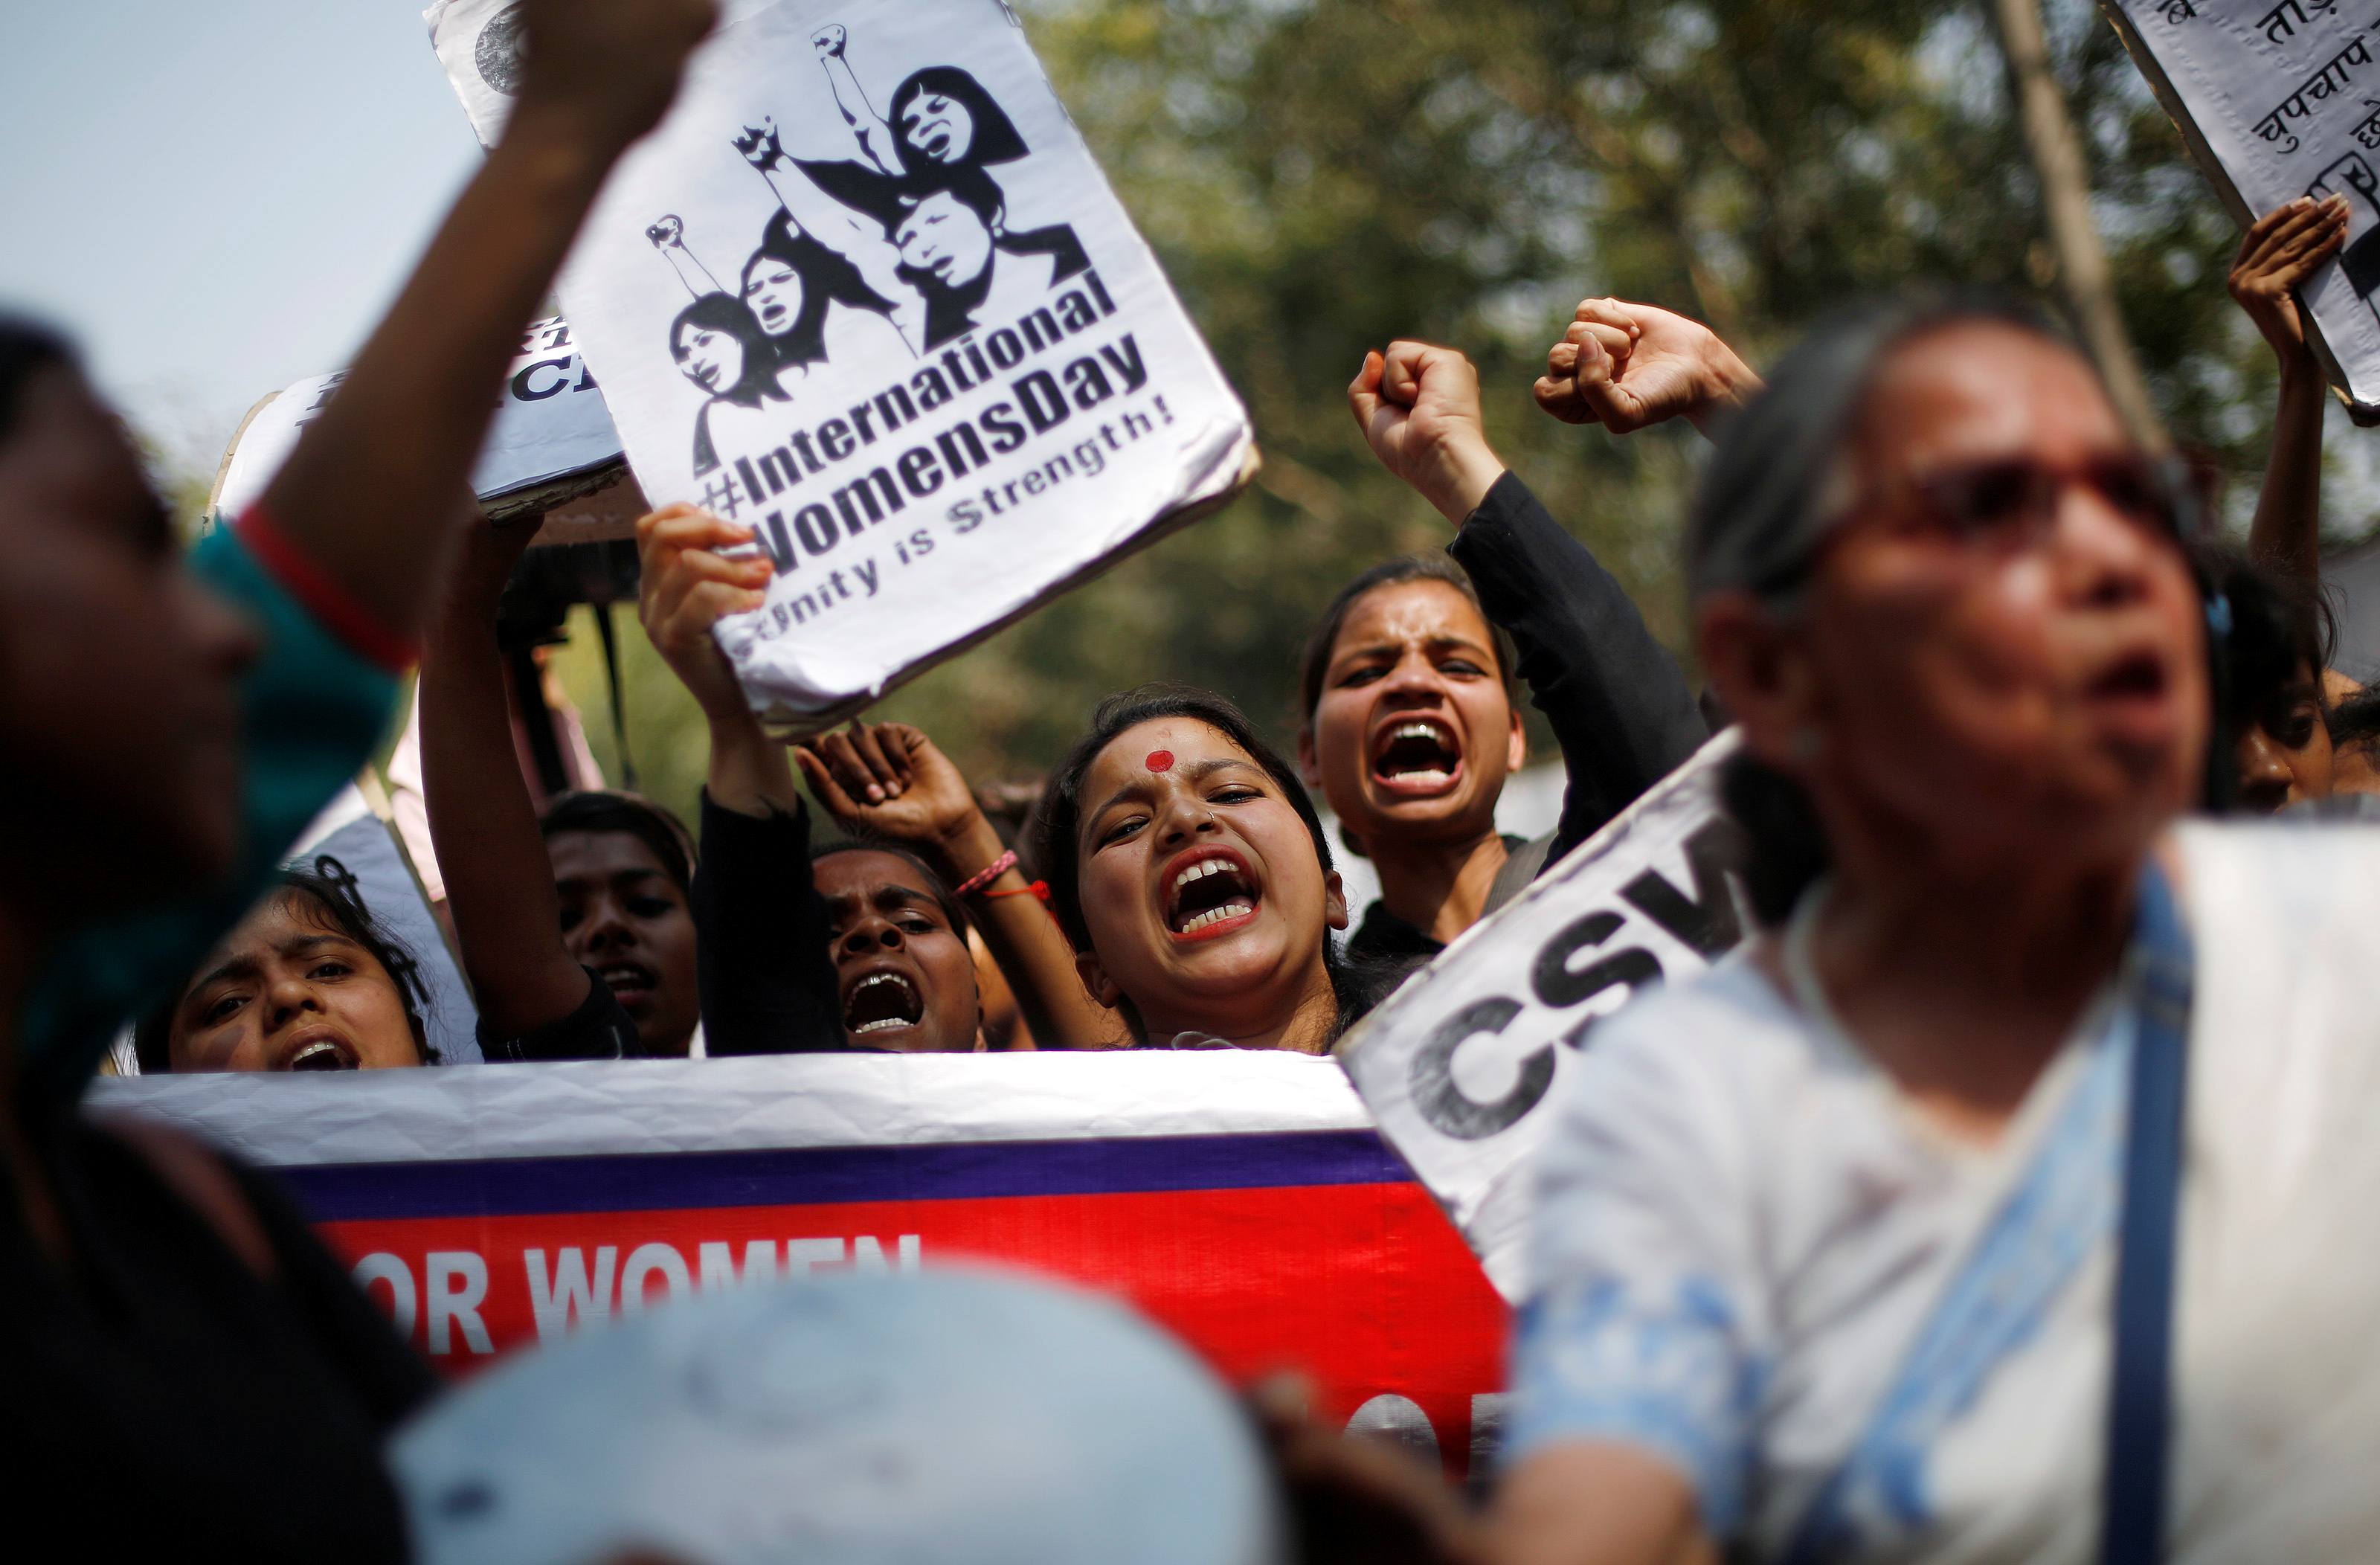 Girls shout slogans during a protest demanding equal rights for women on the occasion of International Women's Day in New Delhi